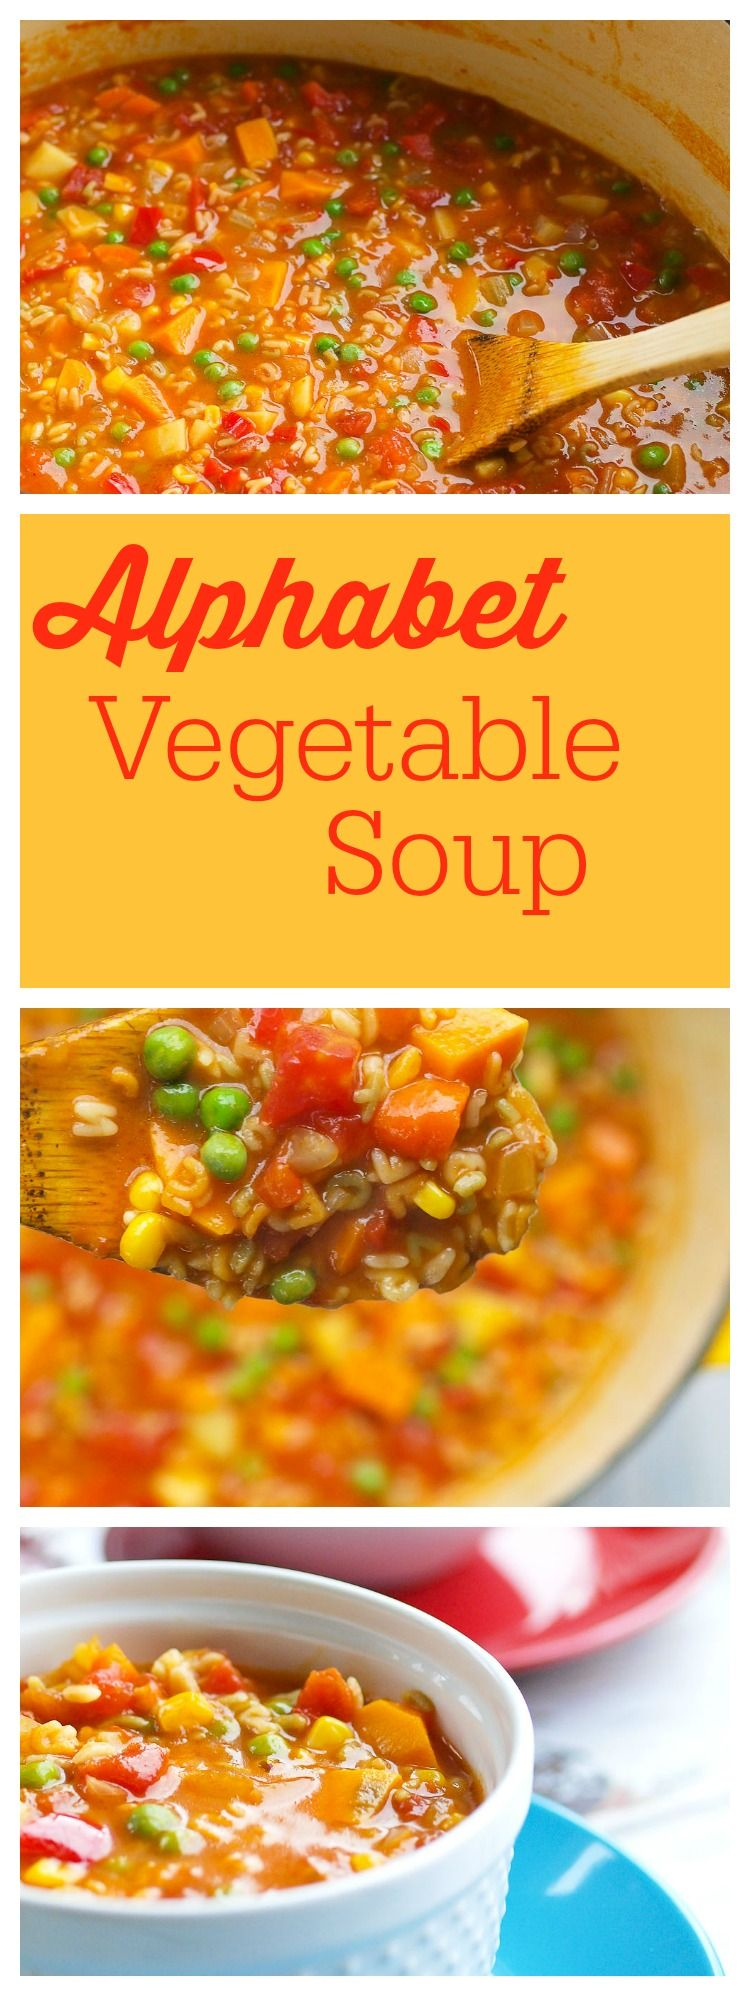 Homemade Alphabet Vegetable Soup Recipe